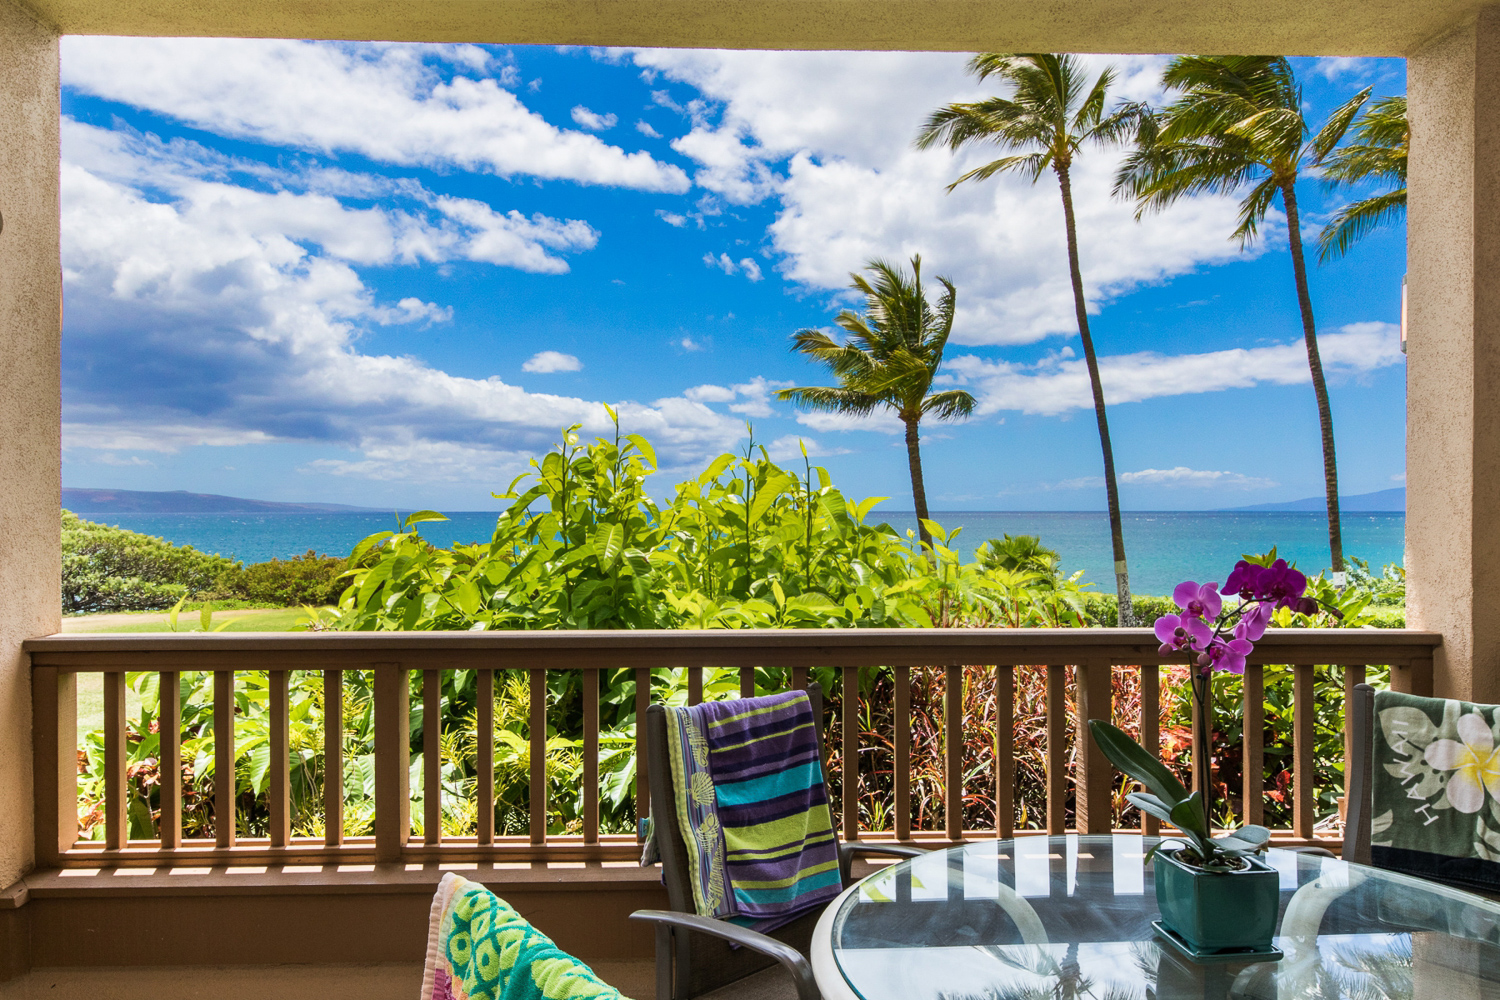 maui condo for sale image of view